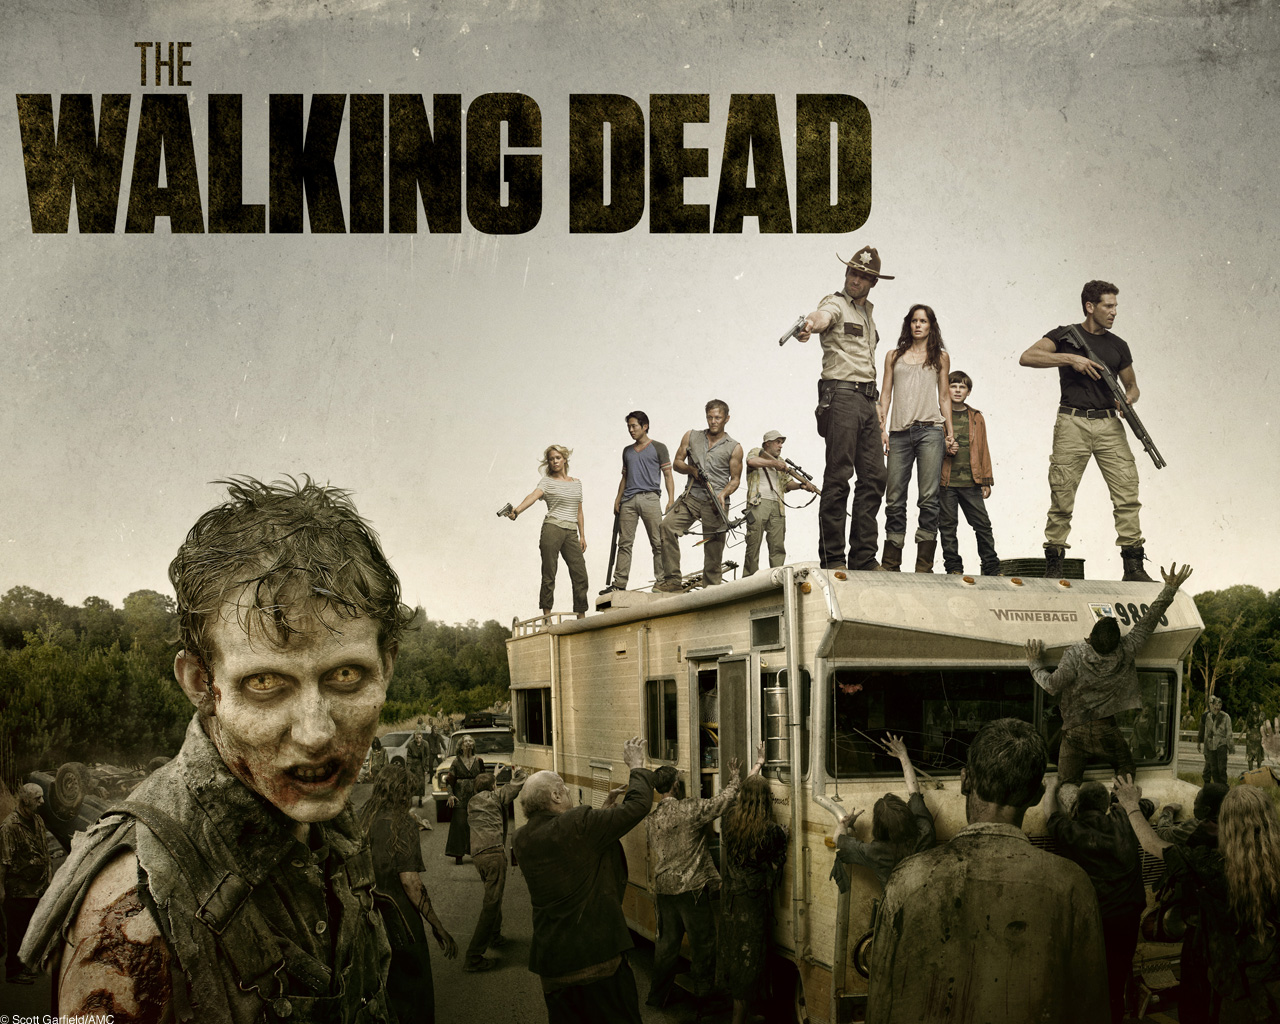 Il mondo apolcalittico in The Walking Dead